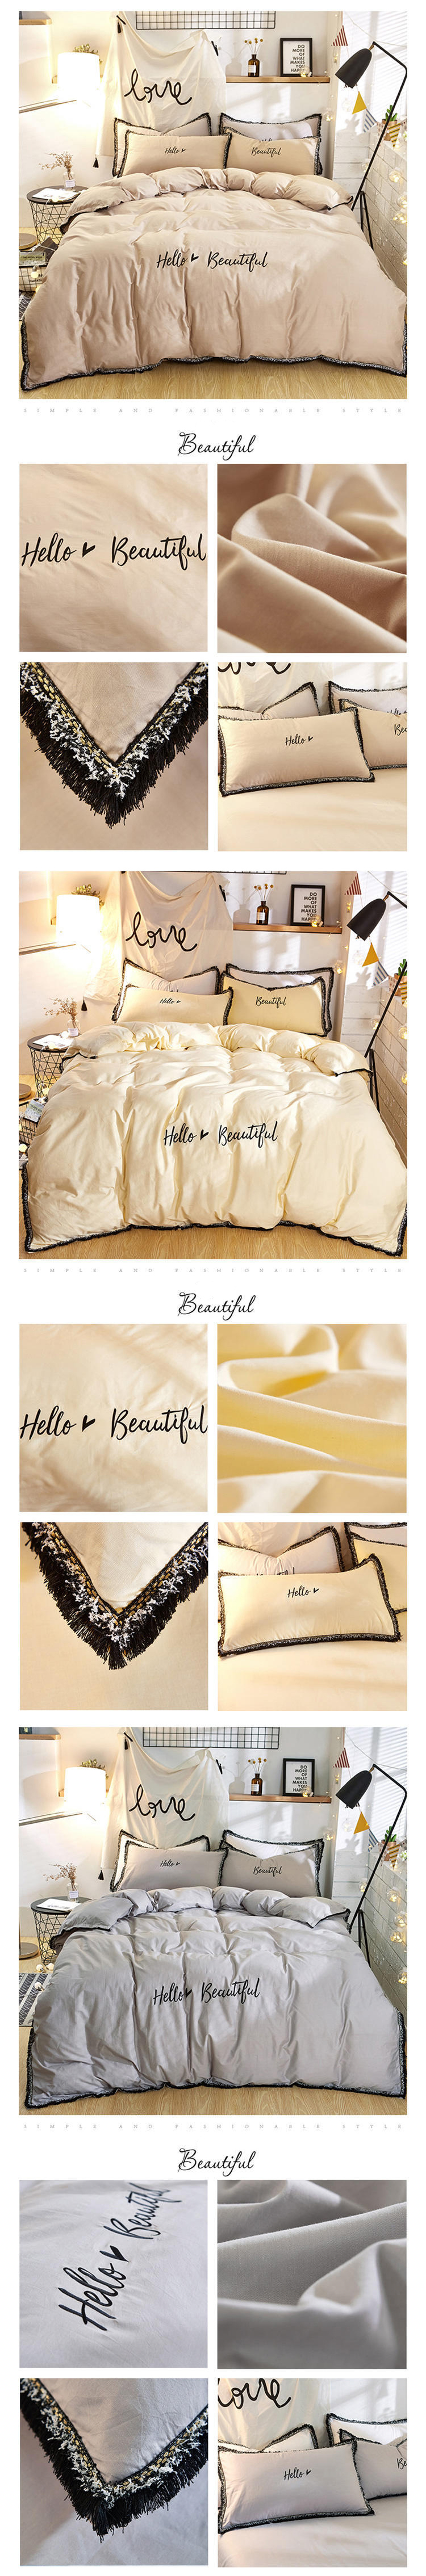 2018 bedding set queen size pure cotton embroidered ropa de cama bed linen cotton duvet cover simple fashion home textiles 5